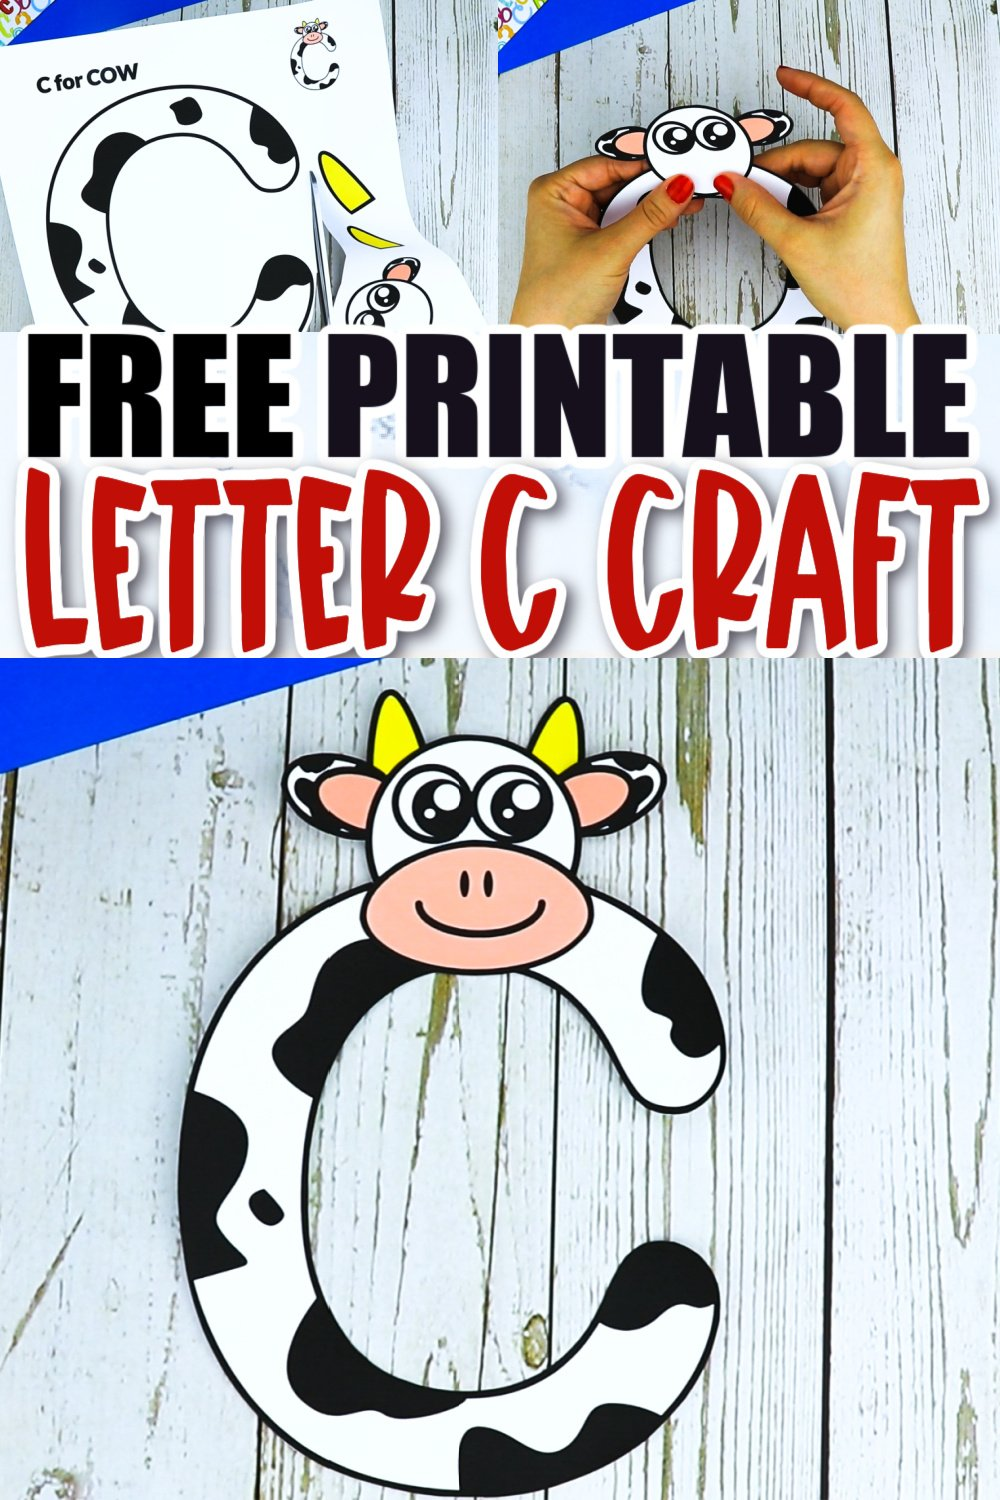 Are you looking for a fun, cute and creative way to teach the uppercase letter C? Use this fun preschool free printable cow letter C craft activity. It is an easy way to make learning simple and fun at the same time. Your kindergarten students will also love making this fun printable letter C cow craft.